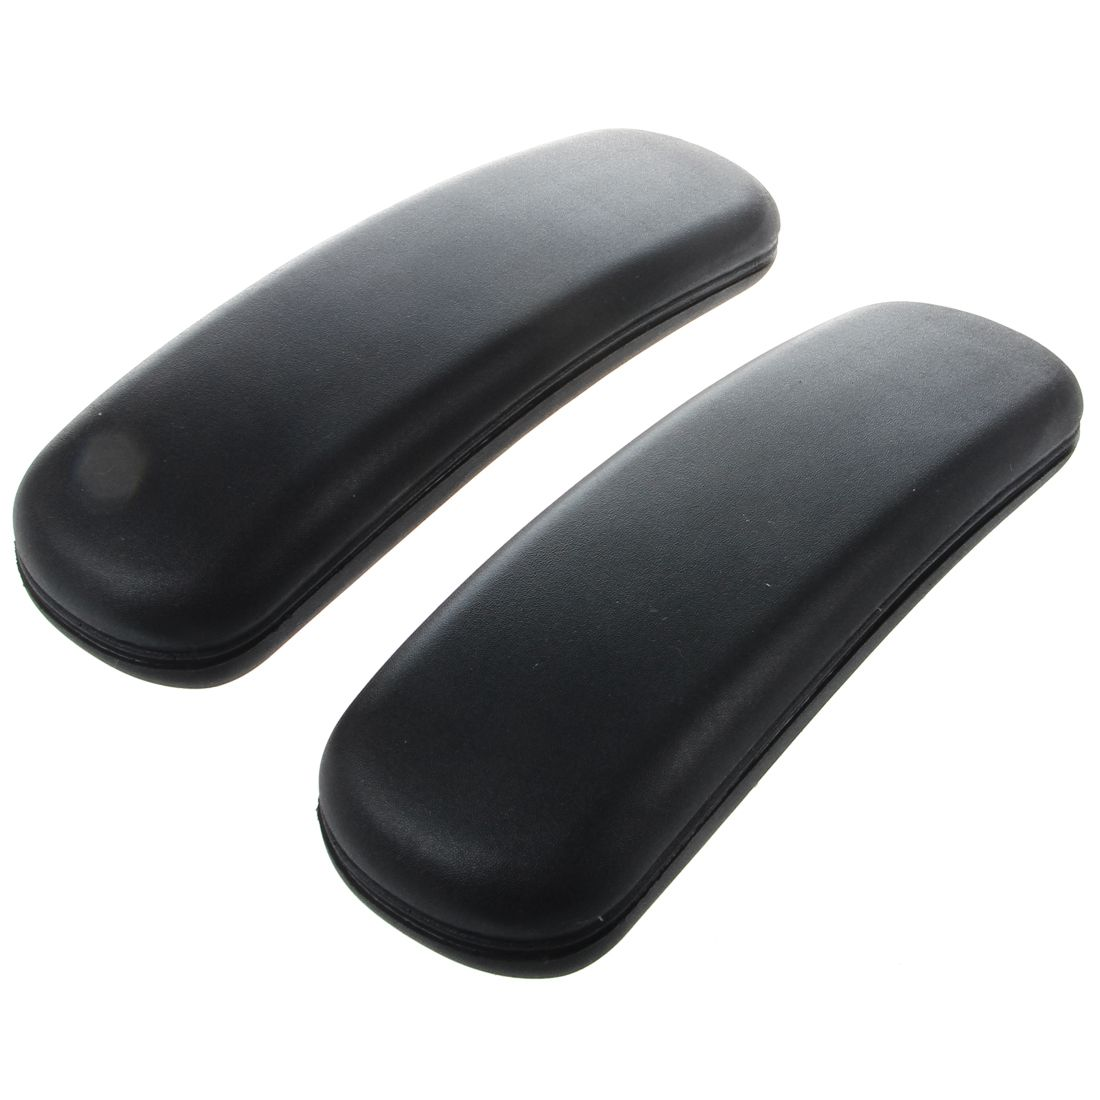 Promotion! Office Chair Parts Arm Pad Armrest Replacement 9.75 x 3 (Black)